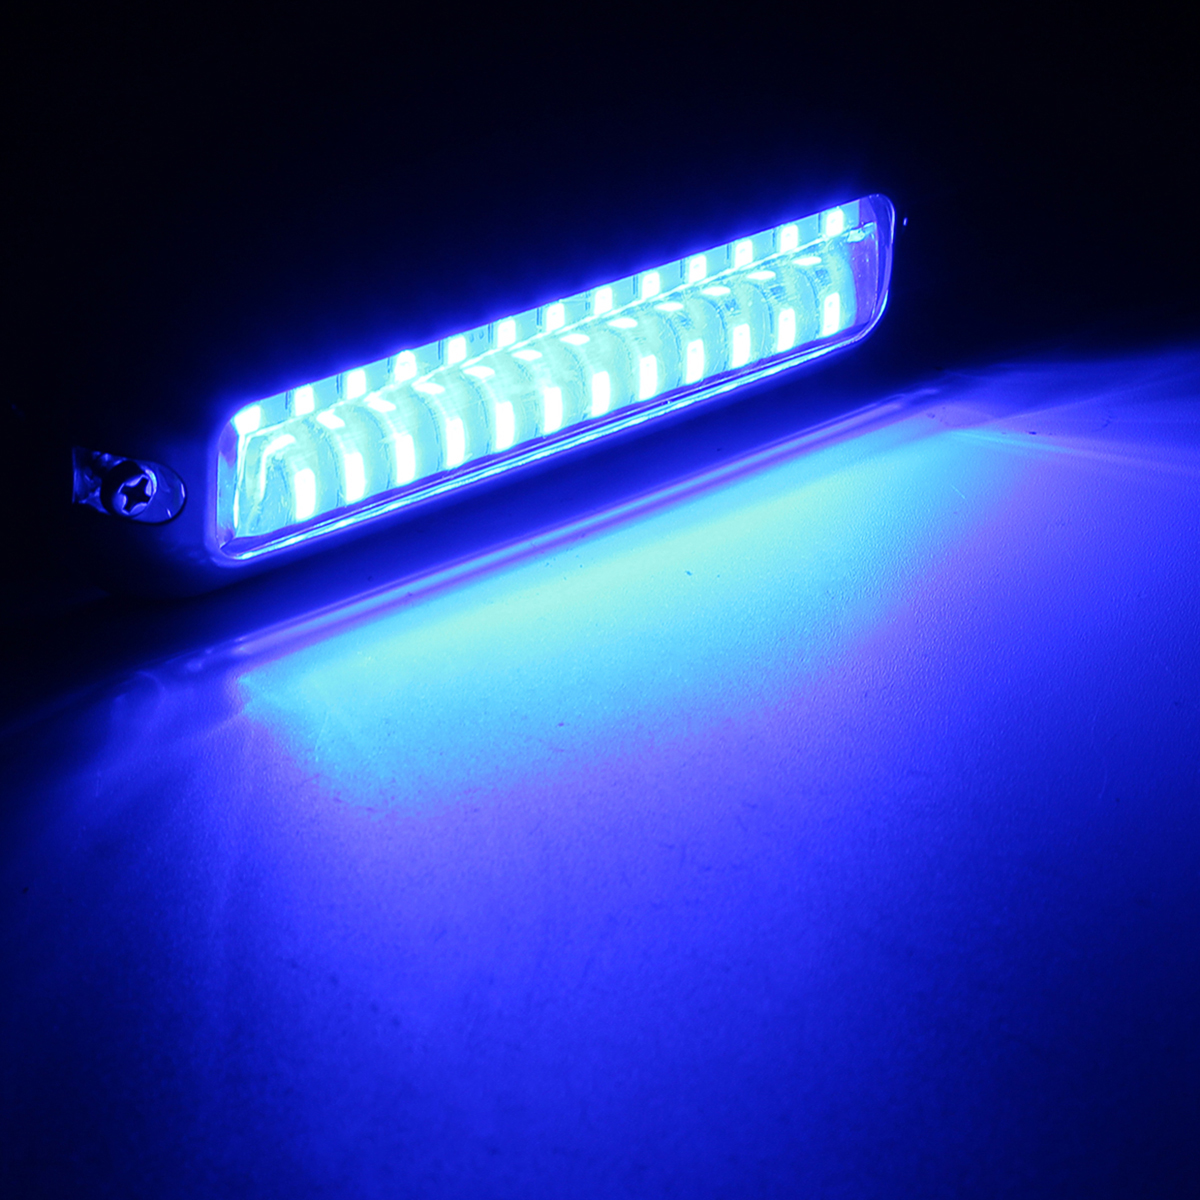 1pc Universal 39 Led Underwater Pontoon Boat Transom Fishing Lights Lamp Bulb Boat Transom Light Cover Waterproof High Intensity Boat Parts & Accessories Atv,rv,boat & Other Vehicle